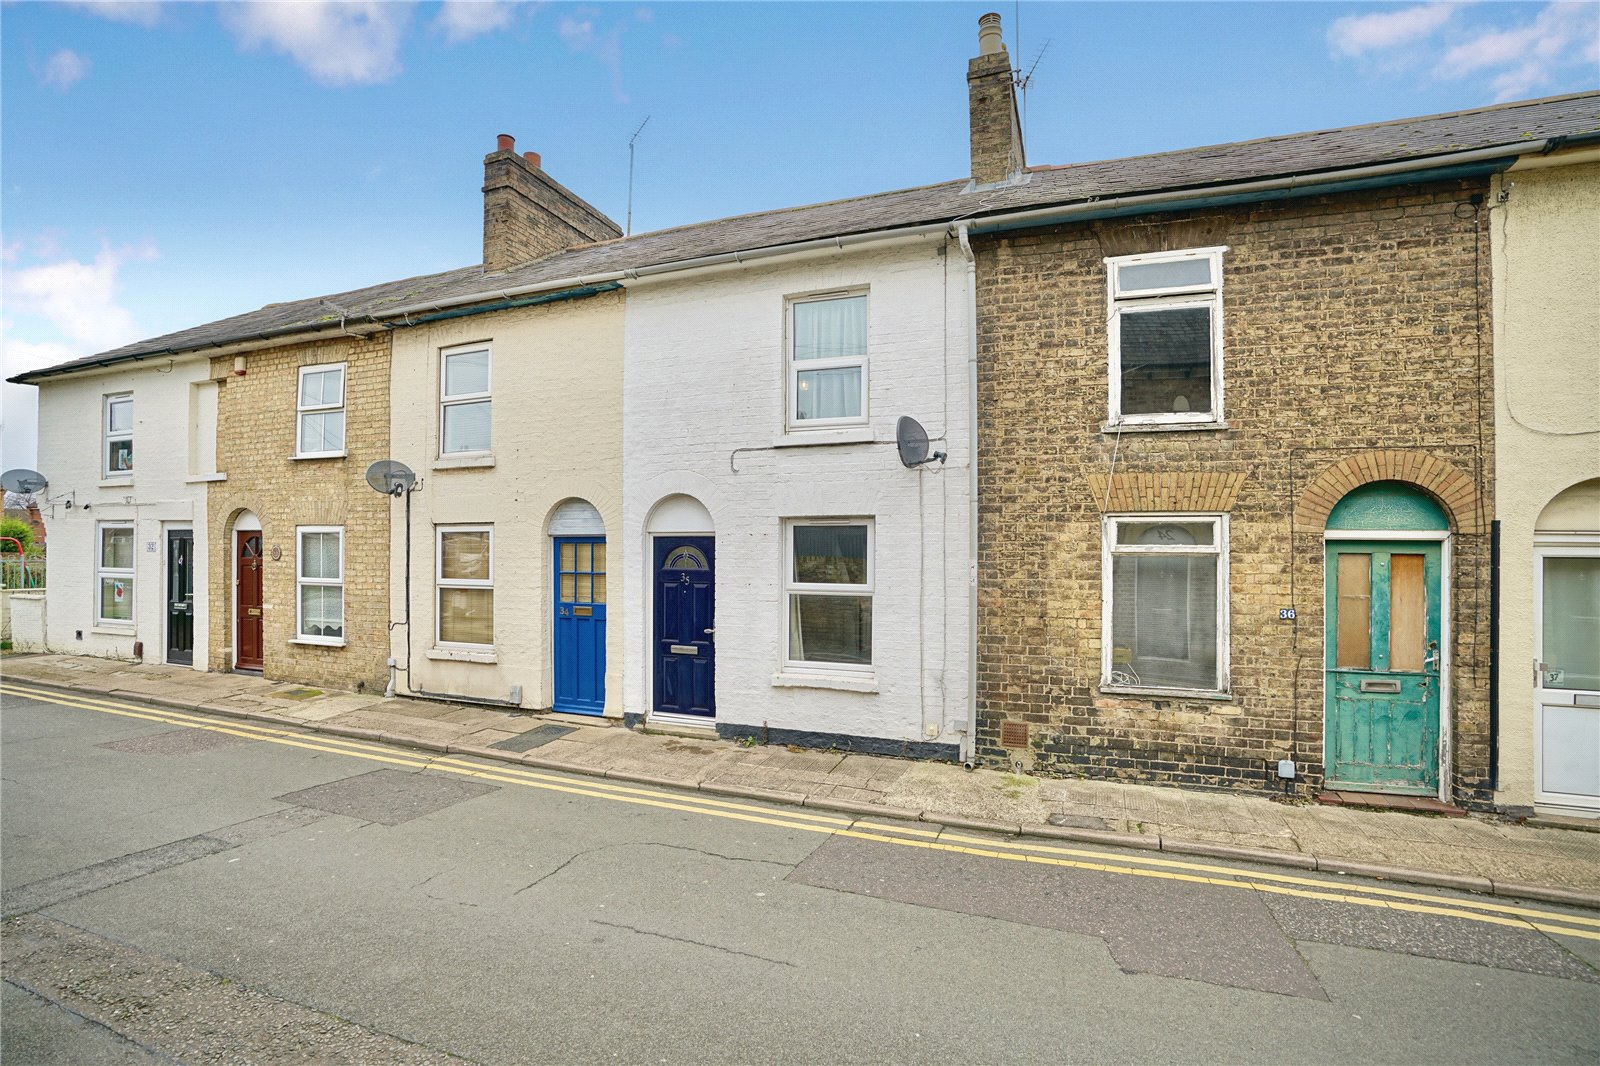 2 bed house for sale in Huntingdon, PE29 7HJ  - Property Image 1